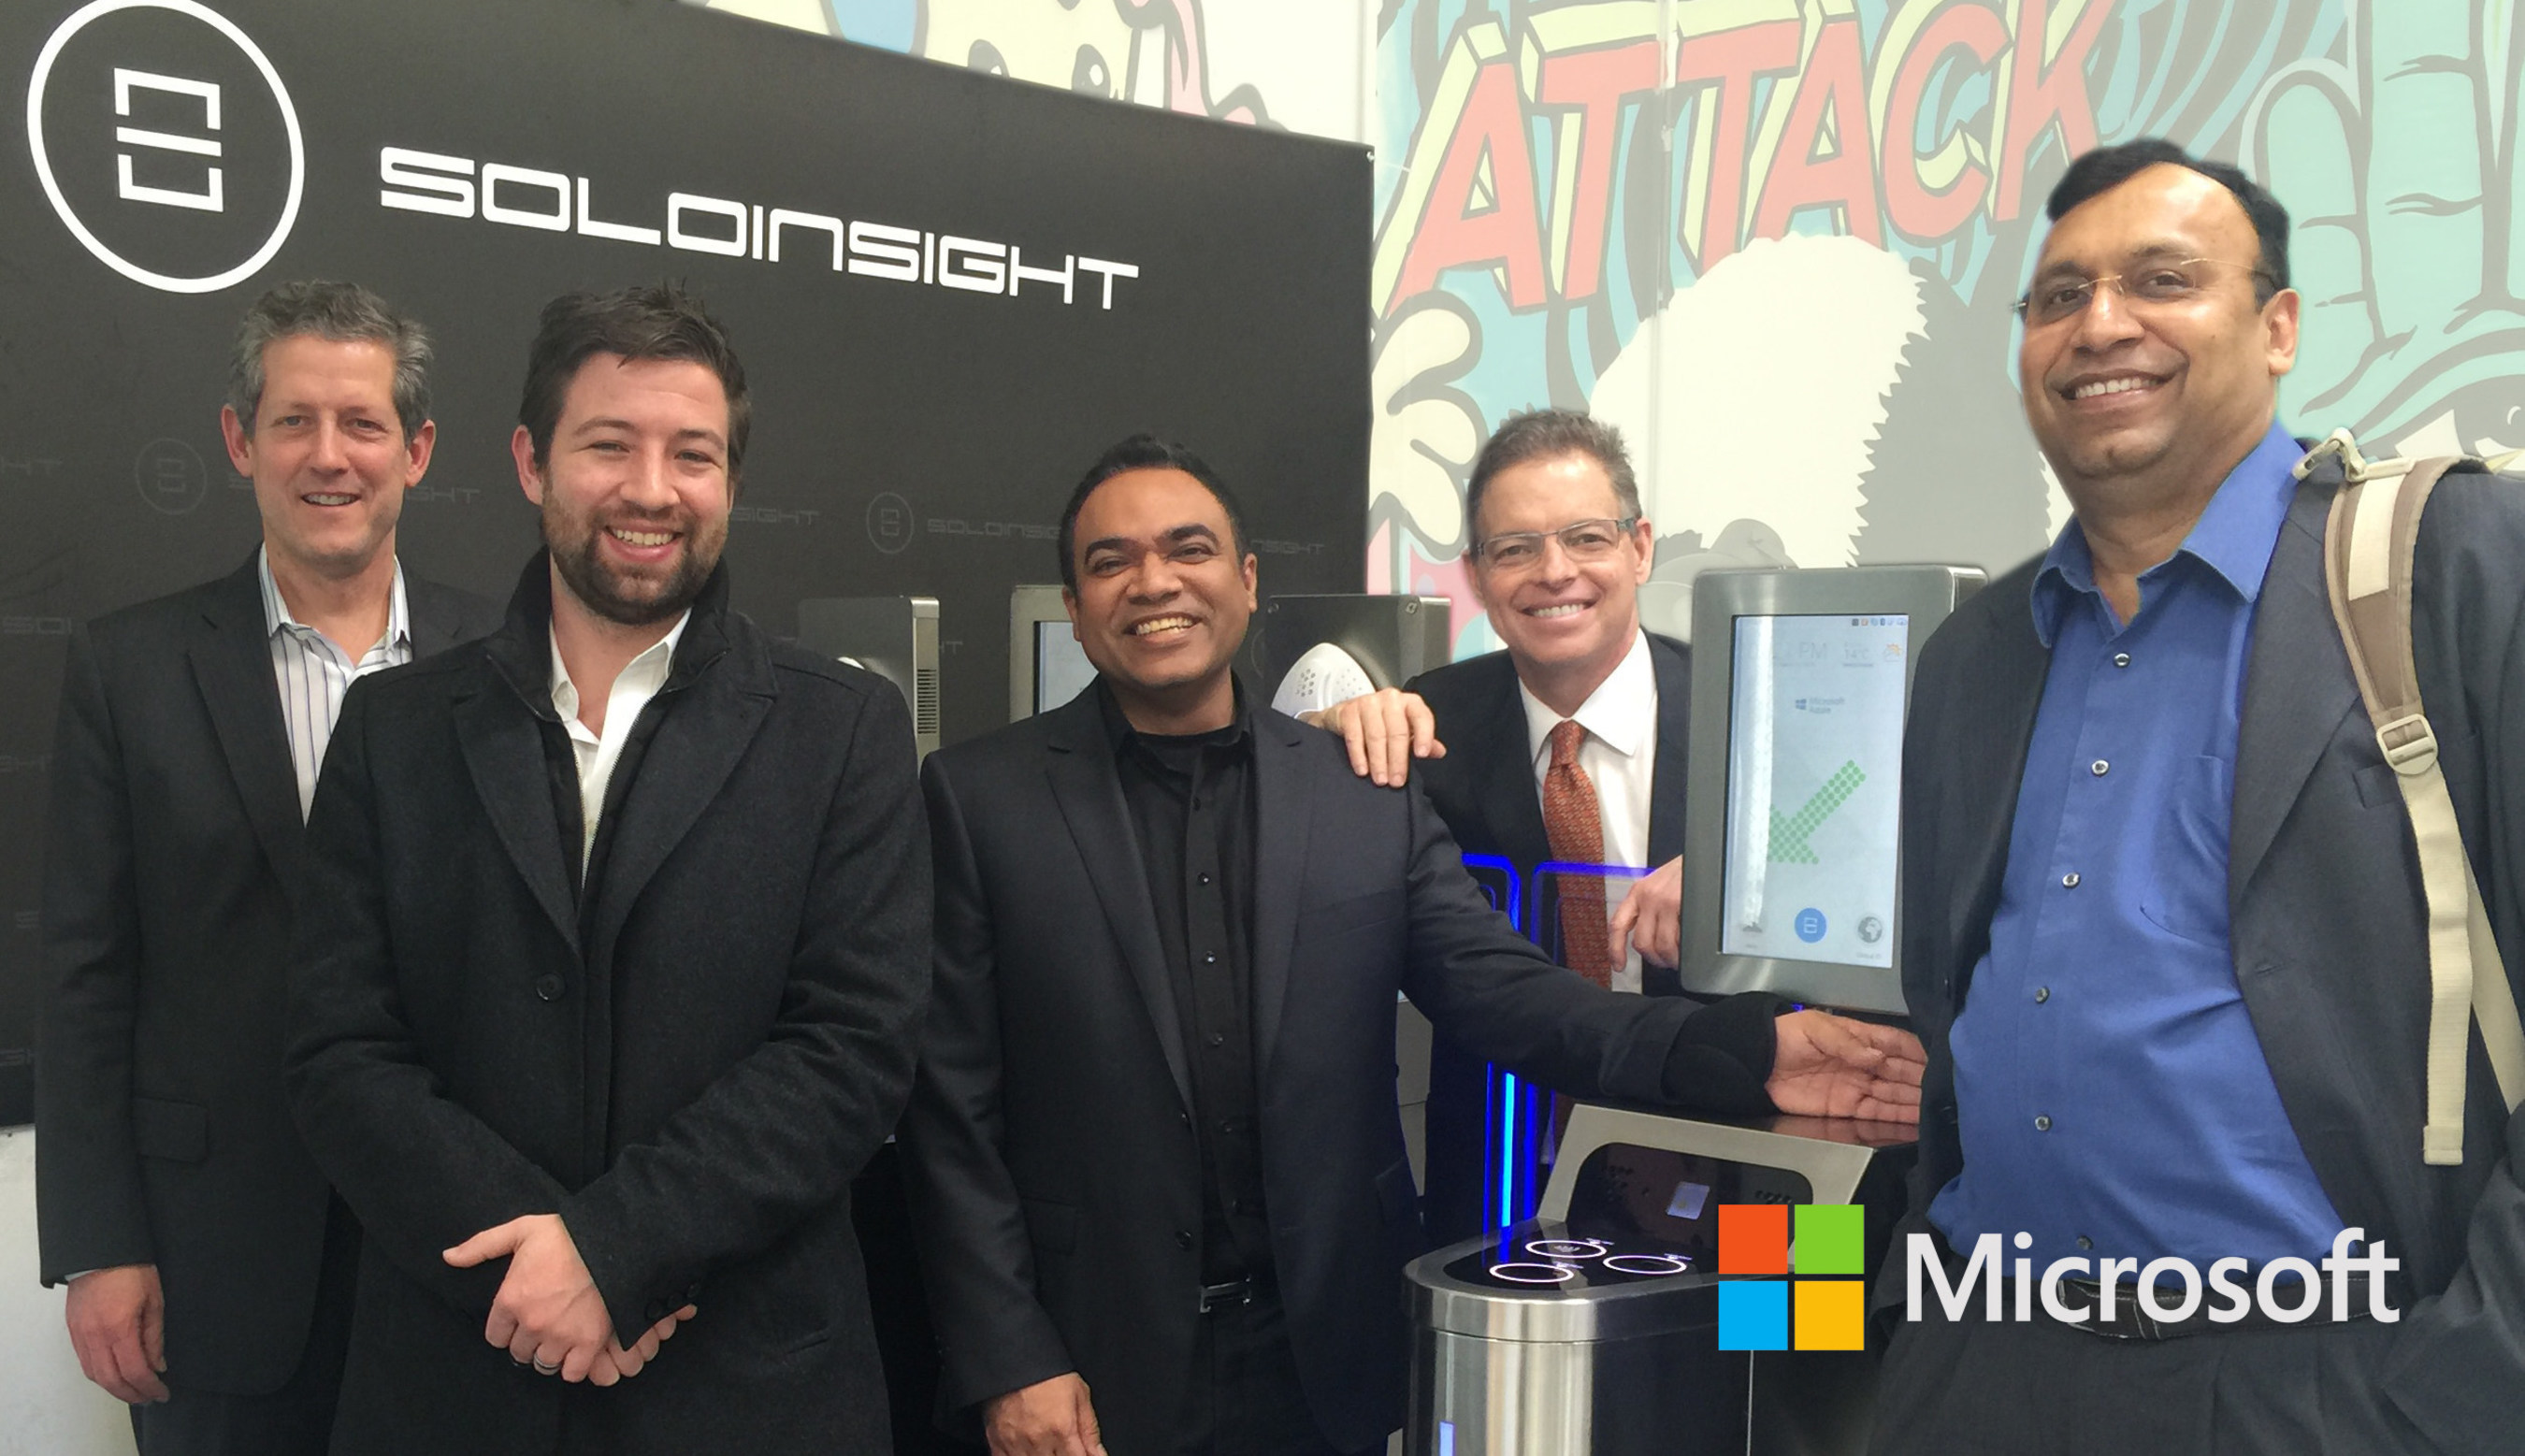 """Microsoft and Soloinsight to Help Build Internet of """"People"""" Together"""